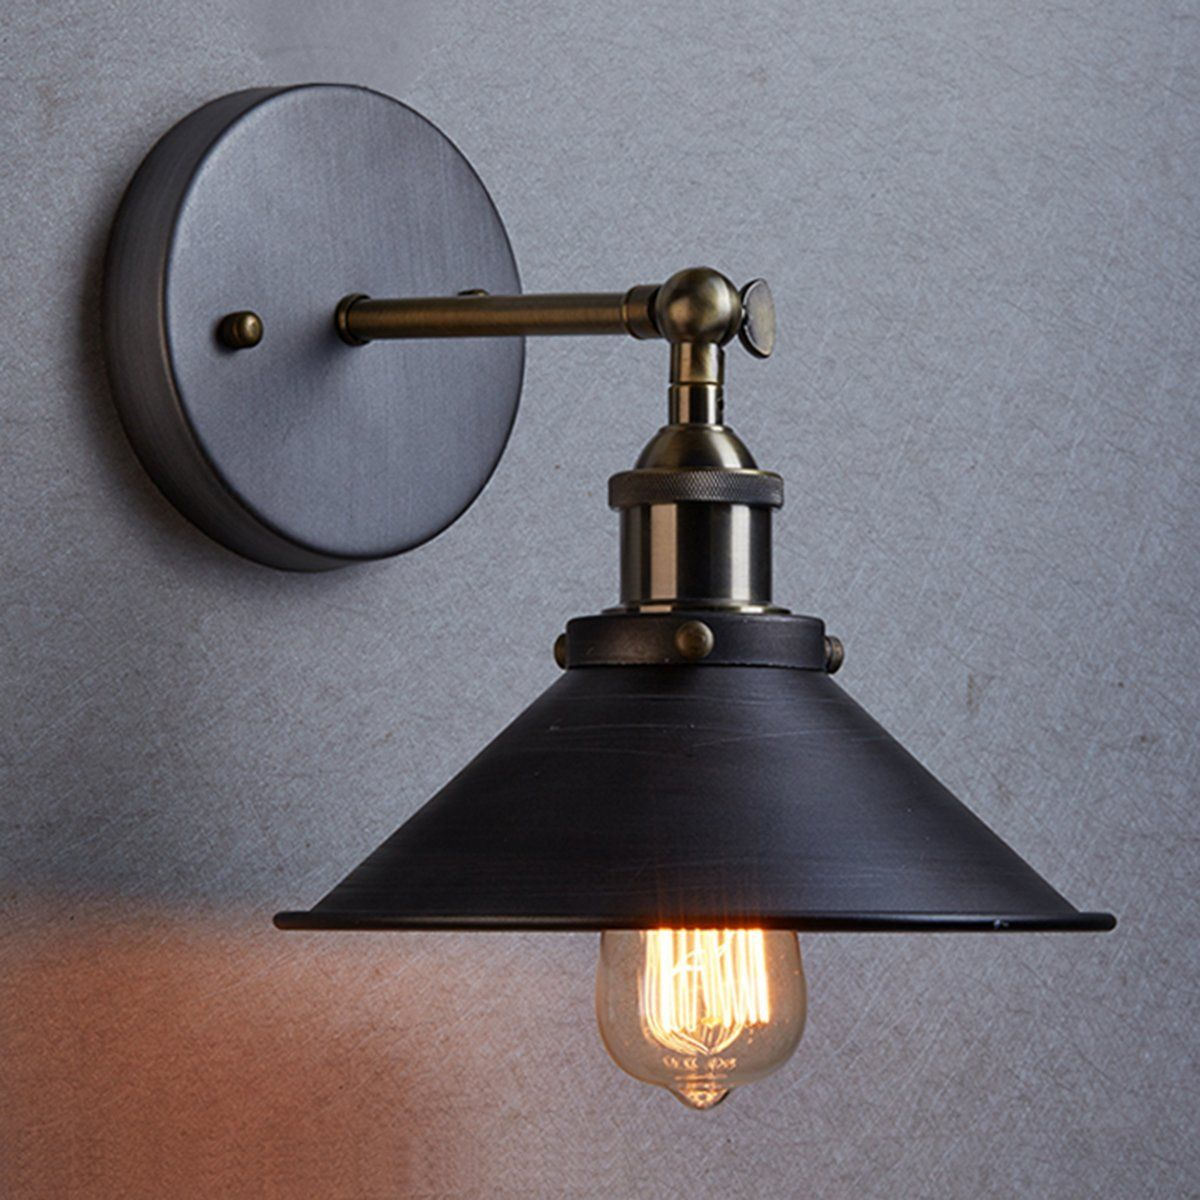 Wood Industrial Loft Wall Lamp Vintage Retro Decor Wall Light Fixtures For Living Room Home Indoor Sconces Lighting Decorative In 2021 Wood Wall Lamps Industrial Wall Sconce Wall Lights